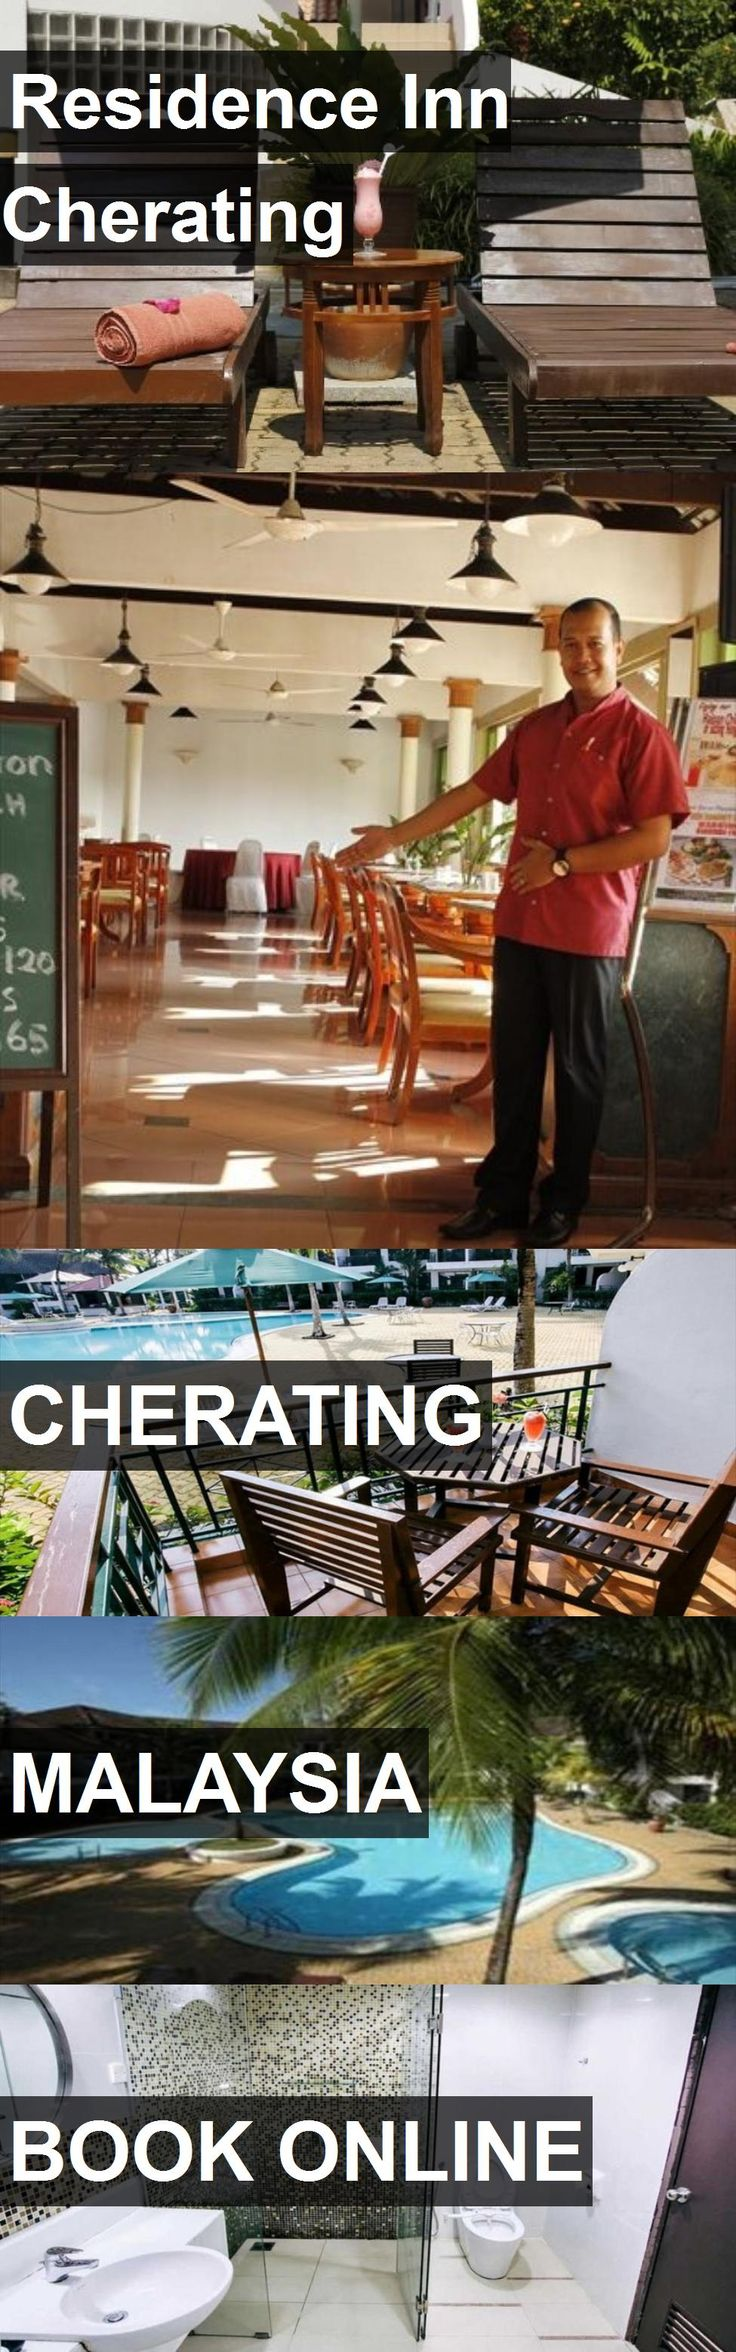 Hotel Residence Inn Cherating in Cherating, Malaysia. For more information, photos, reviews and best prices please follow the link. #Malaysia #Cherating #travel #vacation #hotel